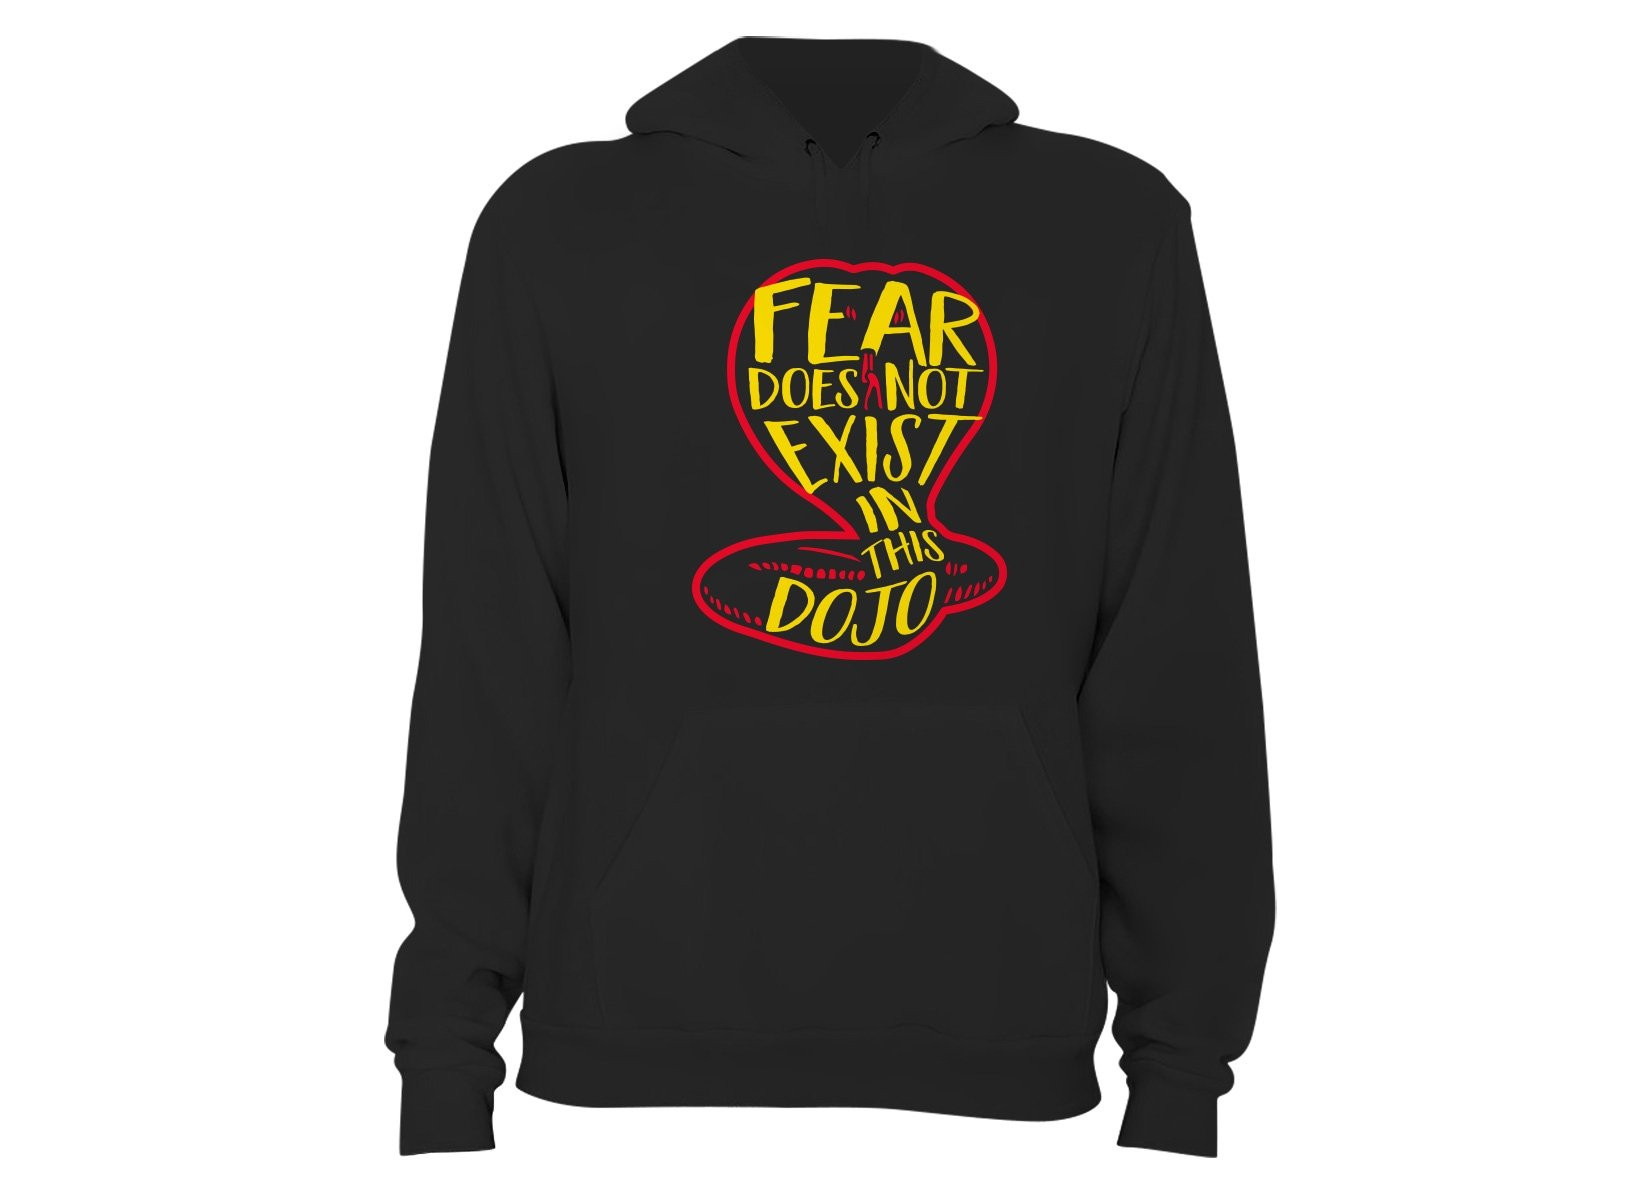 Fear Does Not Exist In This Dojo on Hoodie